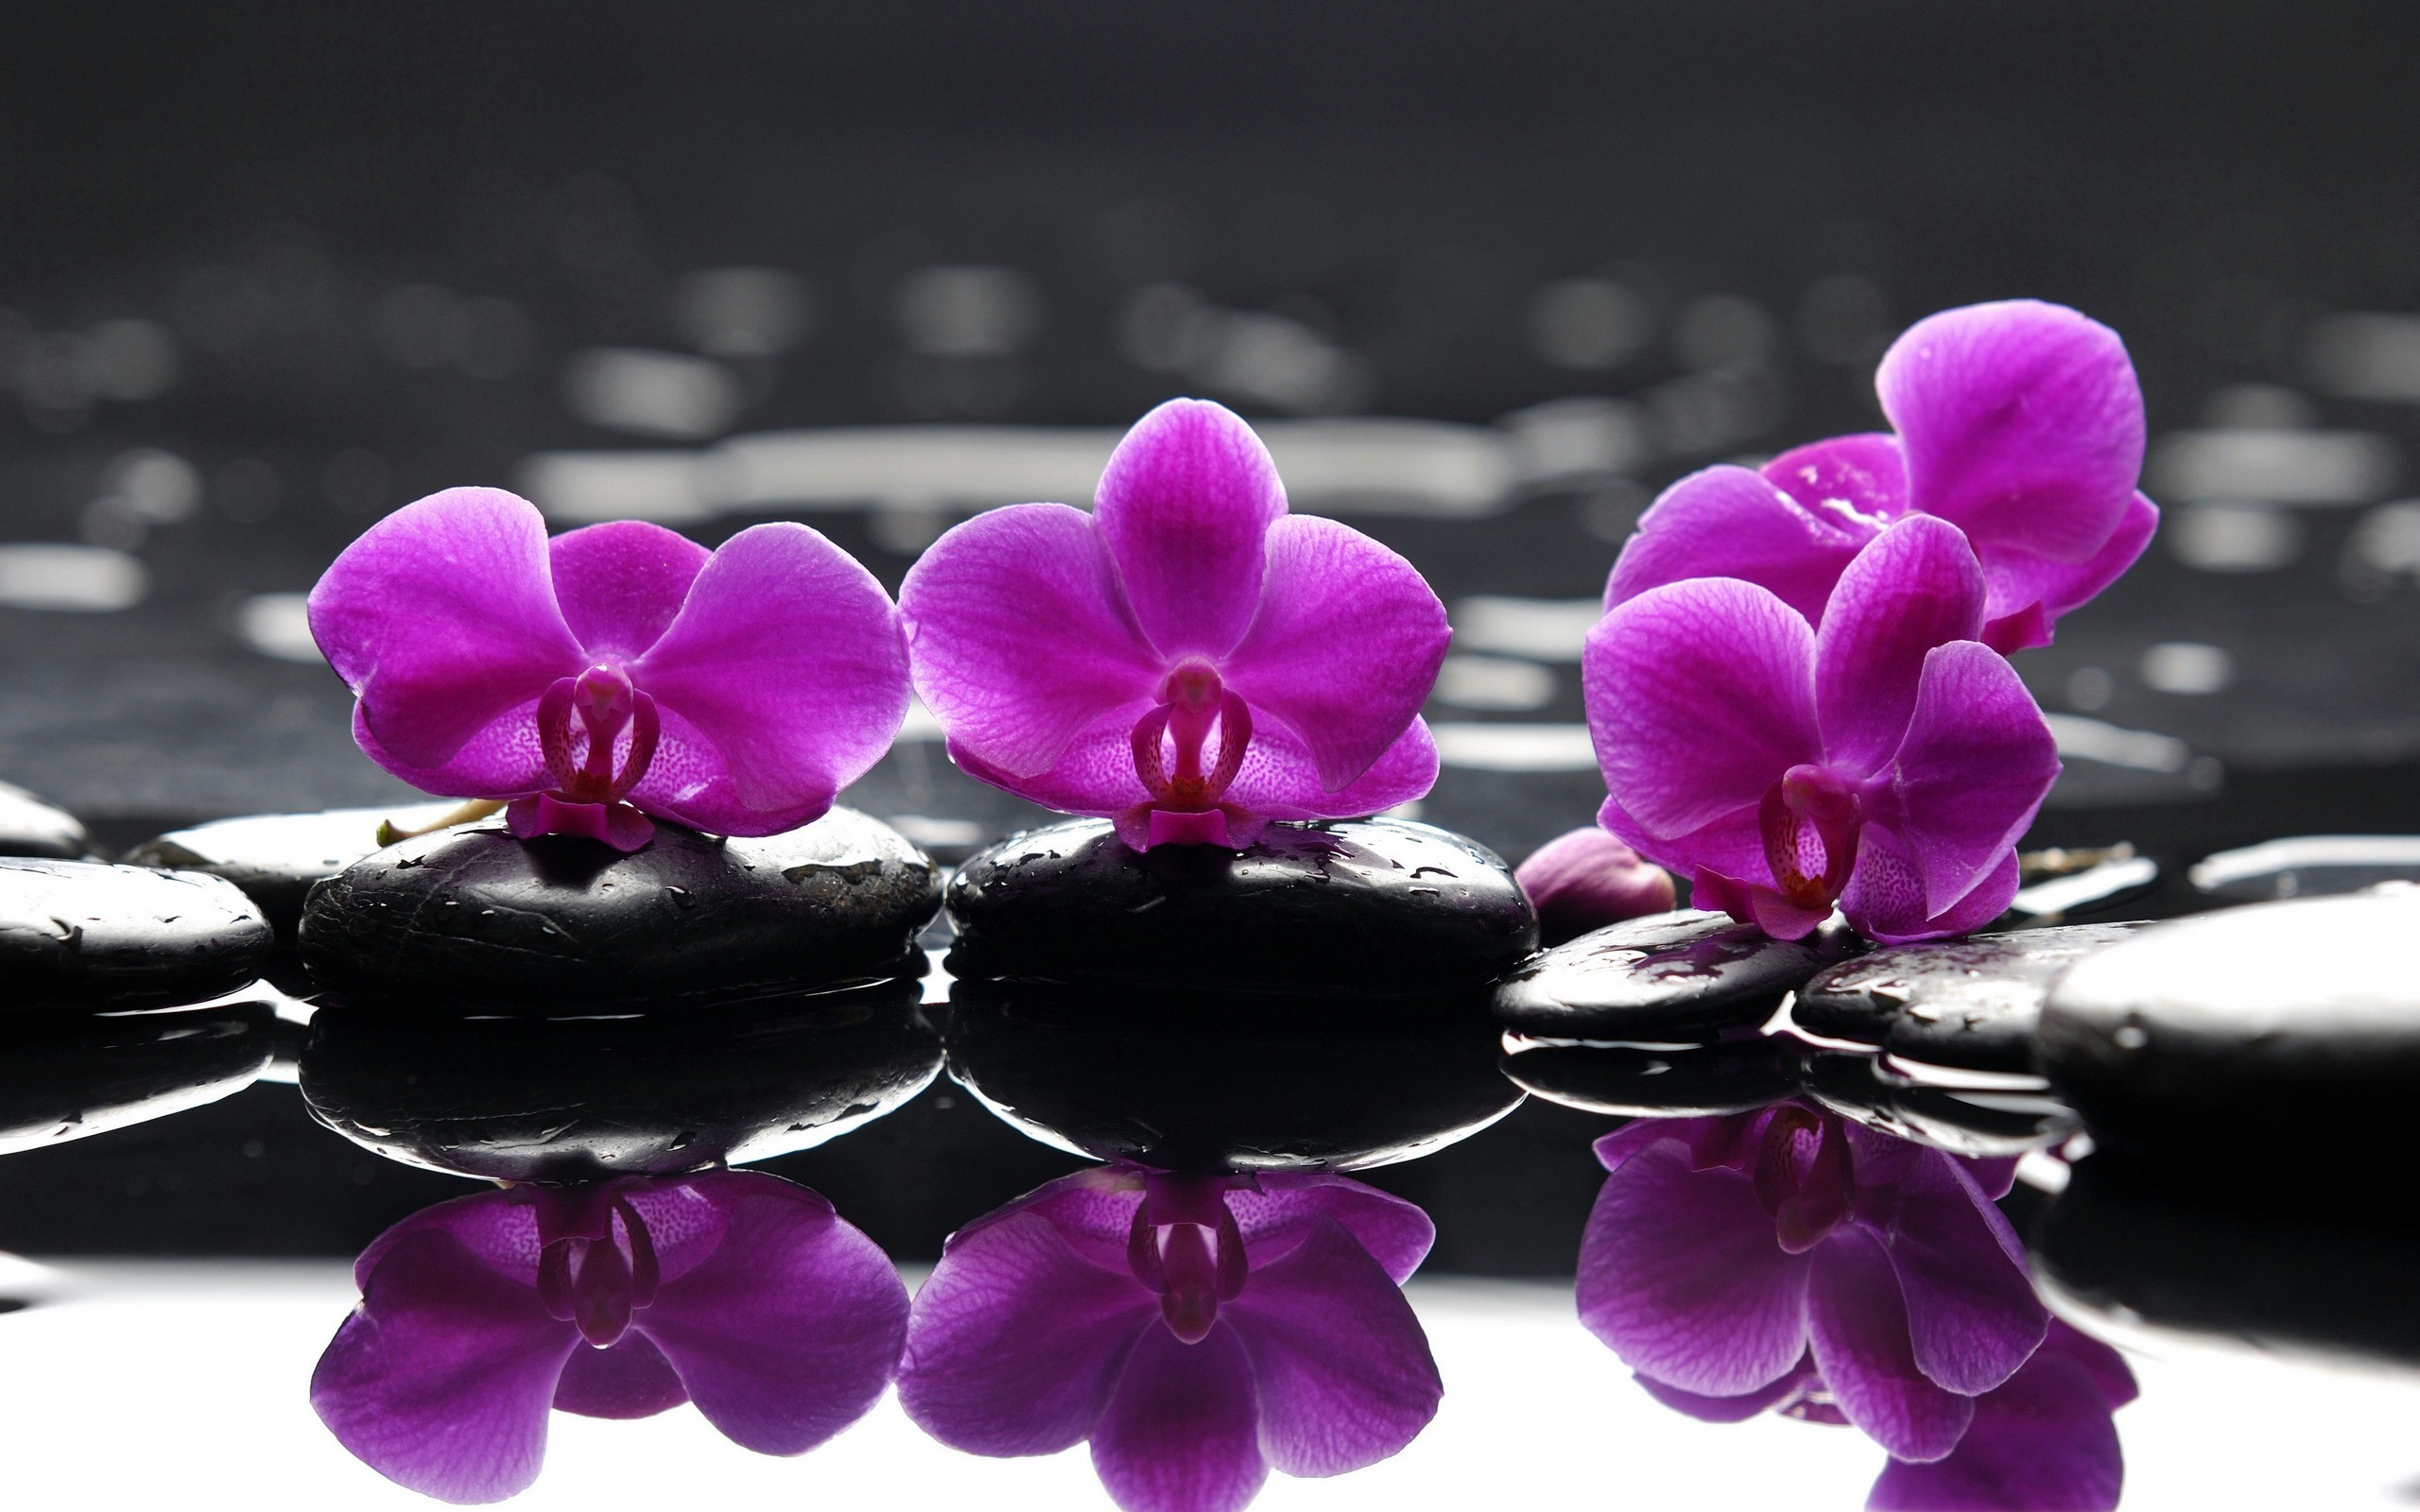 orchid wallpapers backgrounds images - photo #42